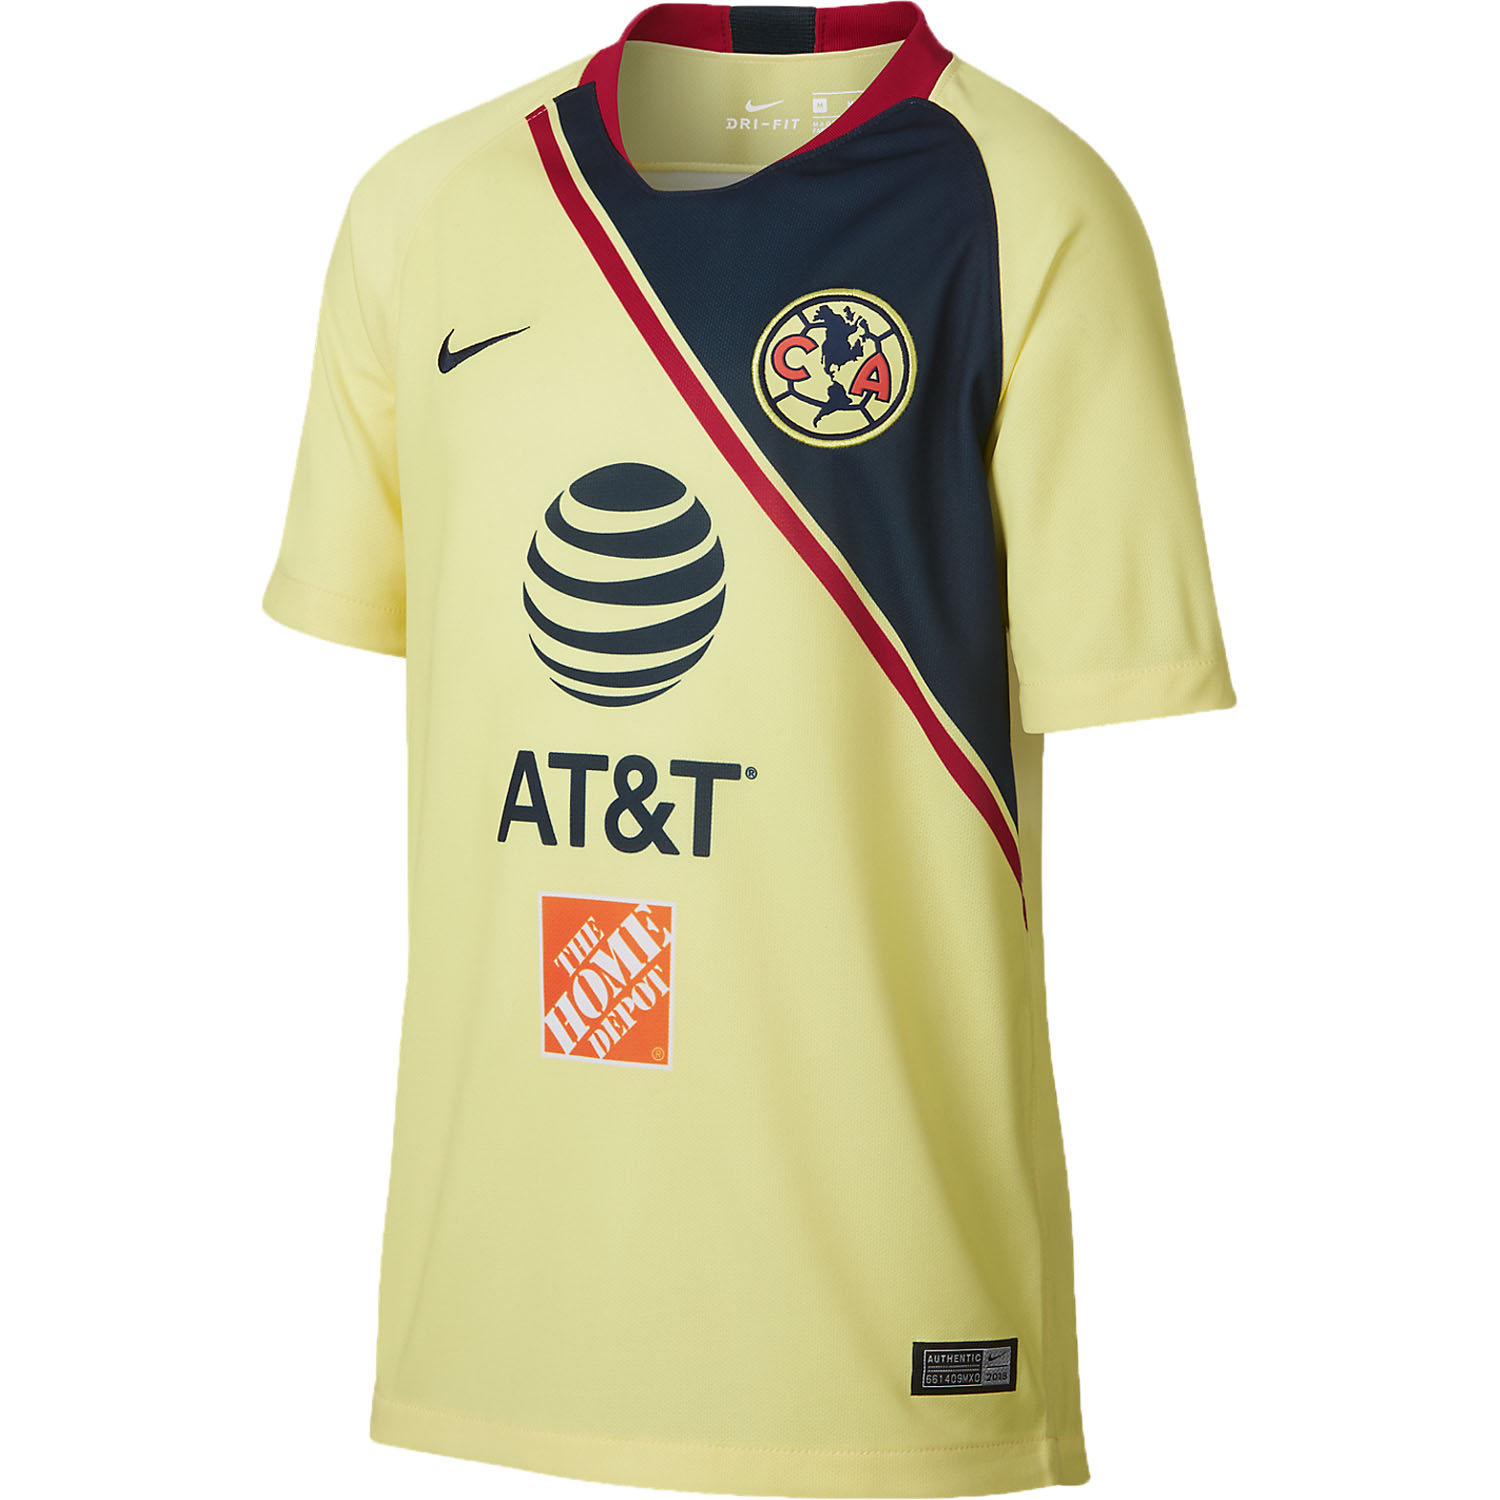 4d84ff7a5 Nike Club America Home 2018-19 Youth Stadium Jersey